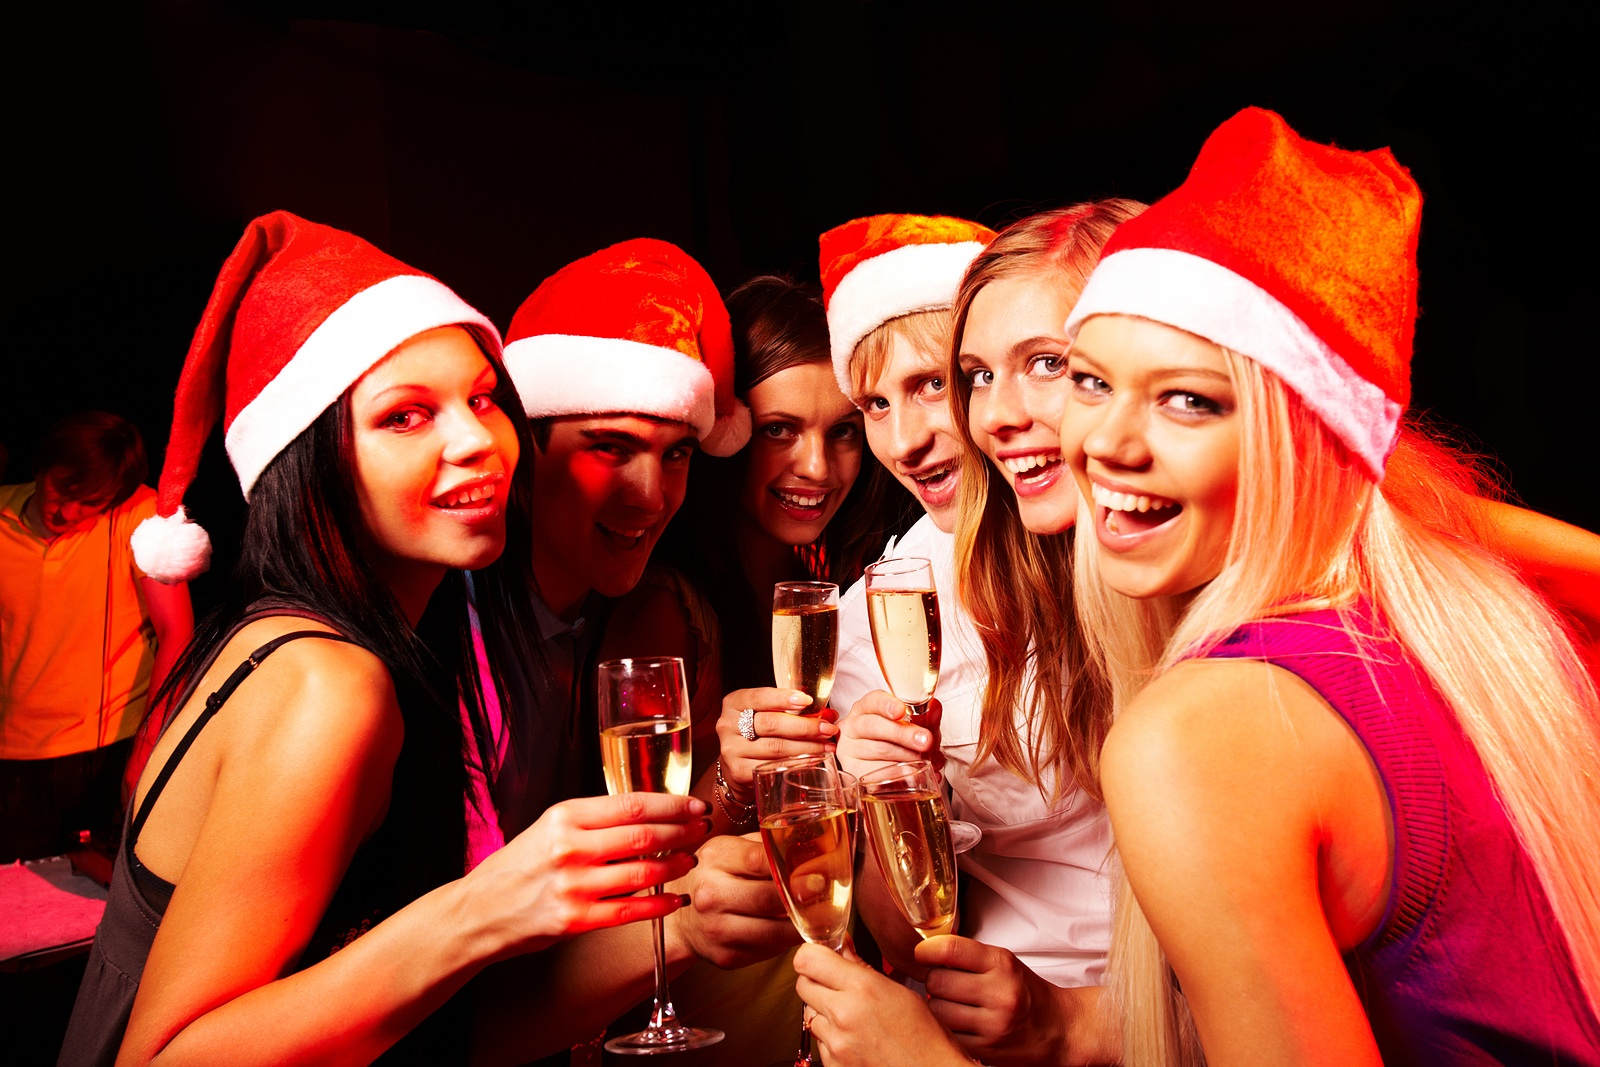 Christmas Themed Party Pictures Wallpapers